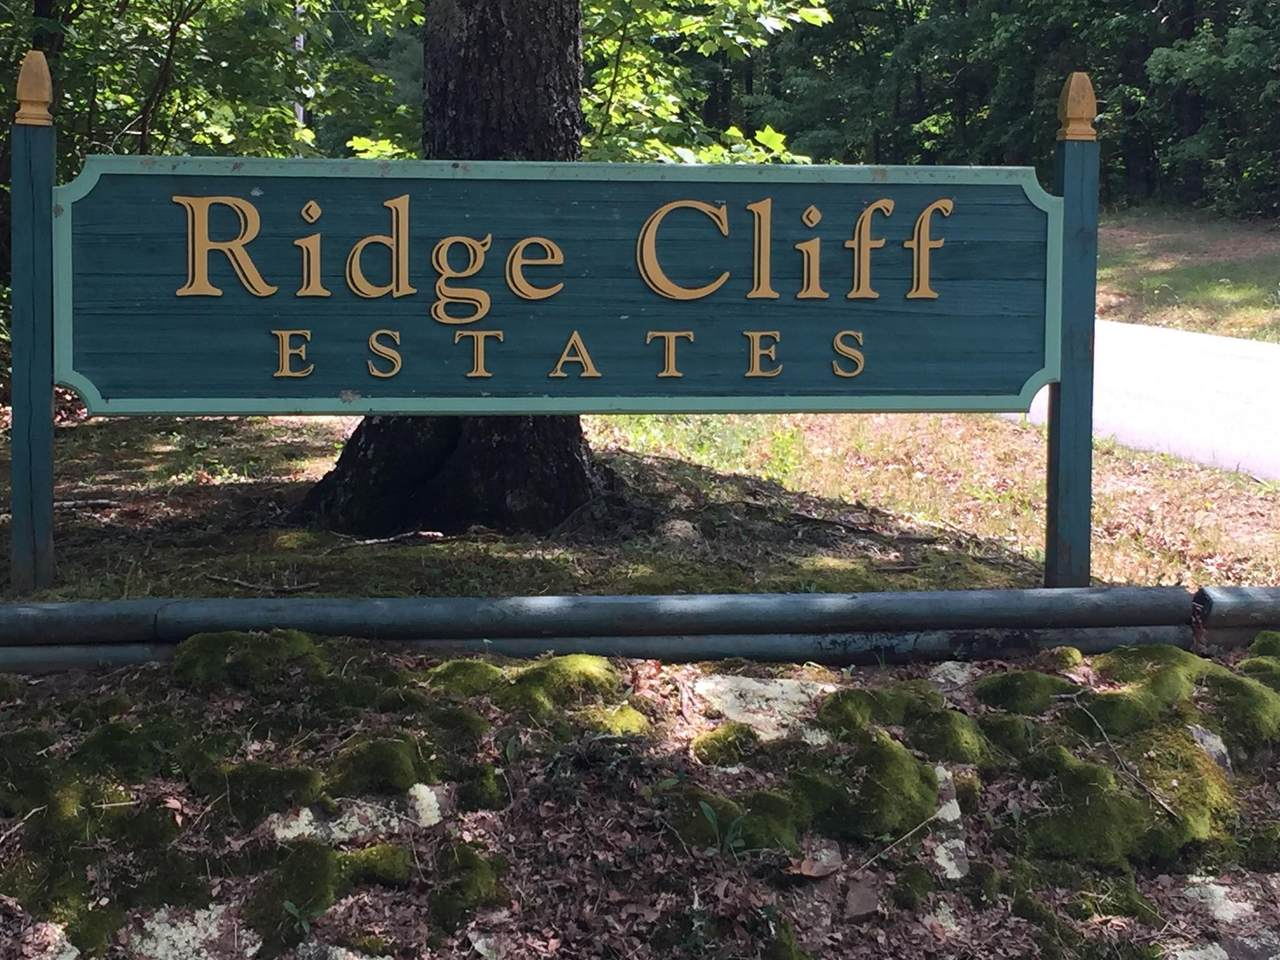 51 Ridge Cliff Dr - Photo 1